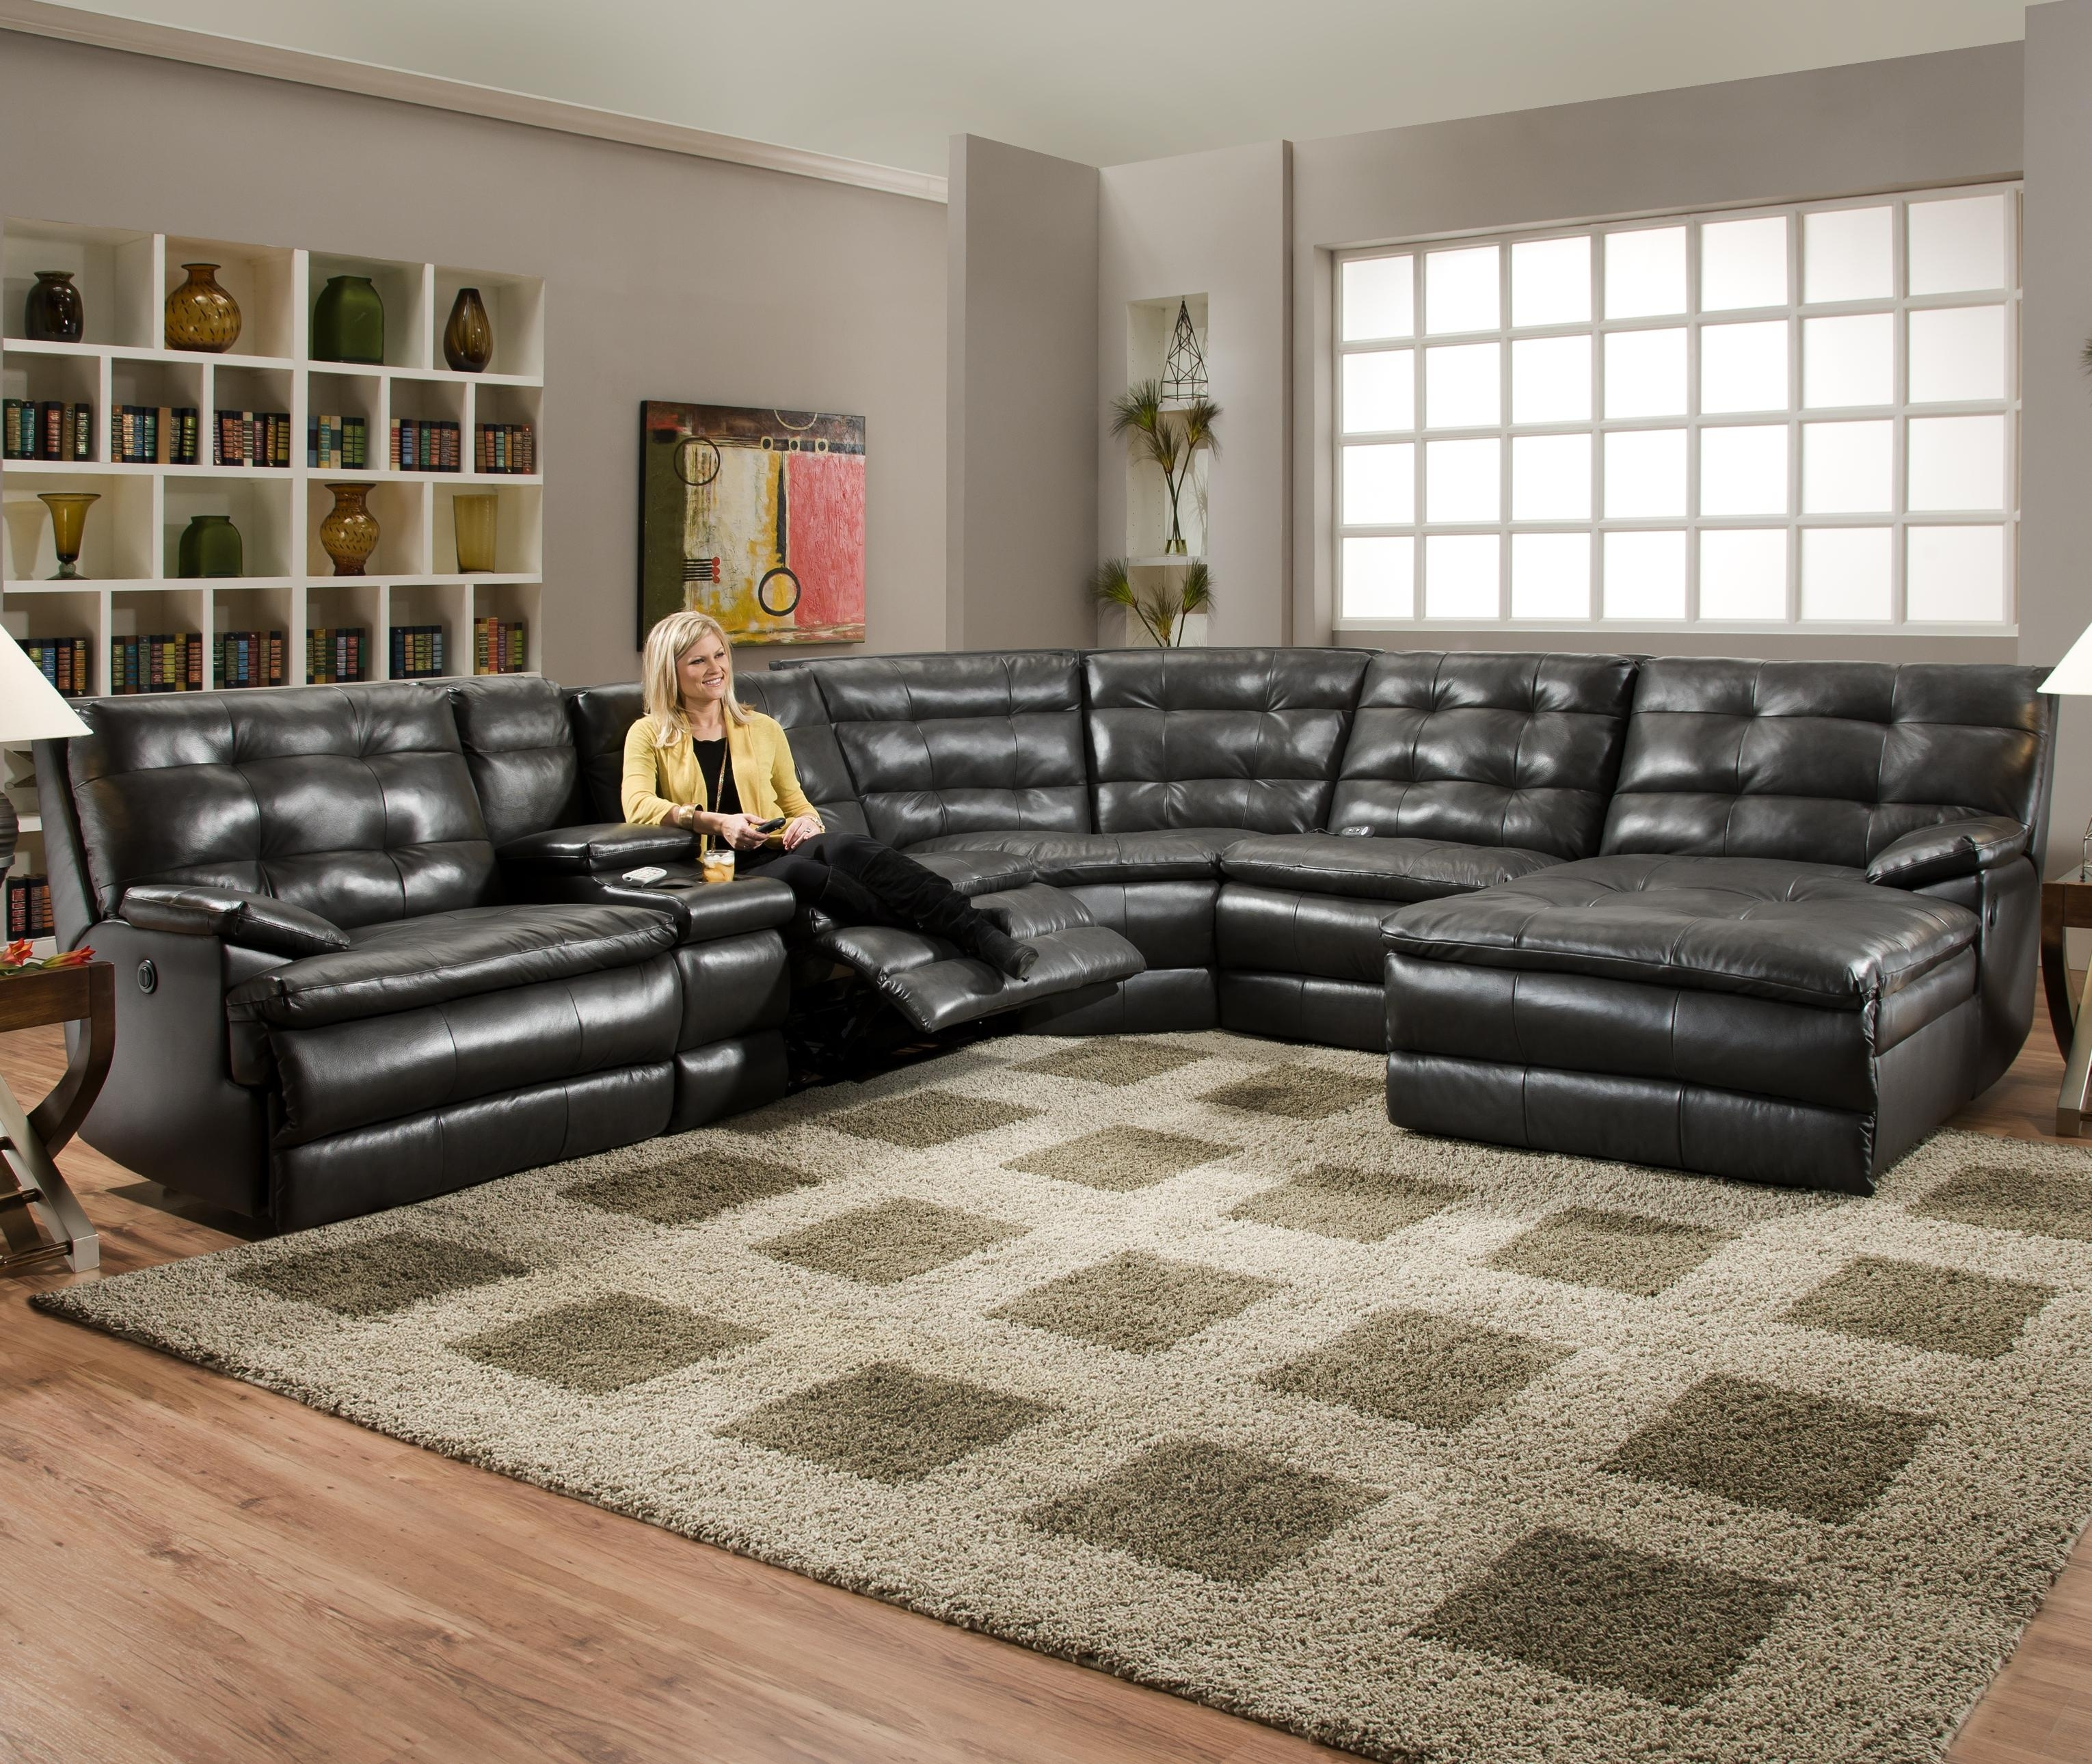 Luxurious Tufted Leather Sectional Sofa In Classy Black Color With with regard to Large Sectional Sofas (Image 9 of 10)